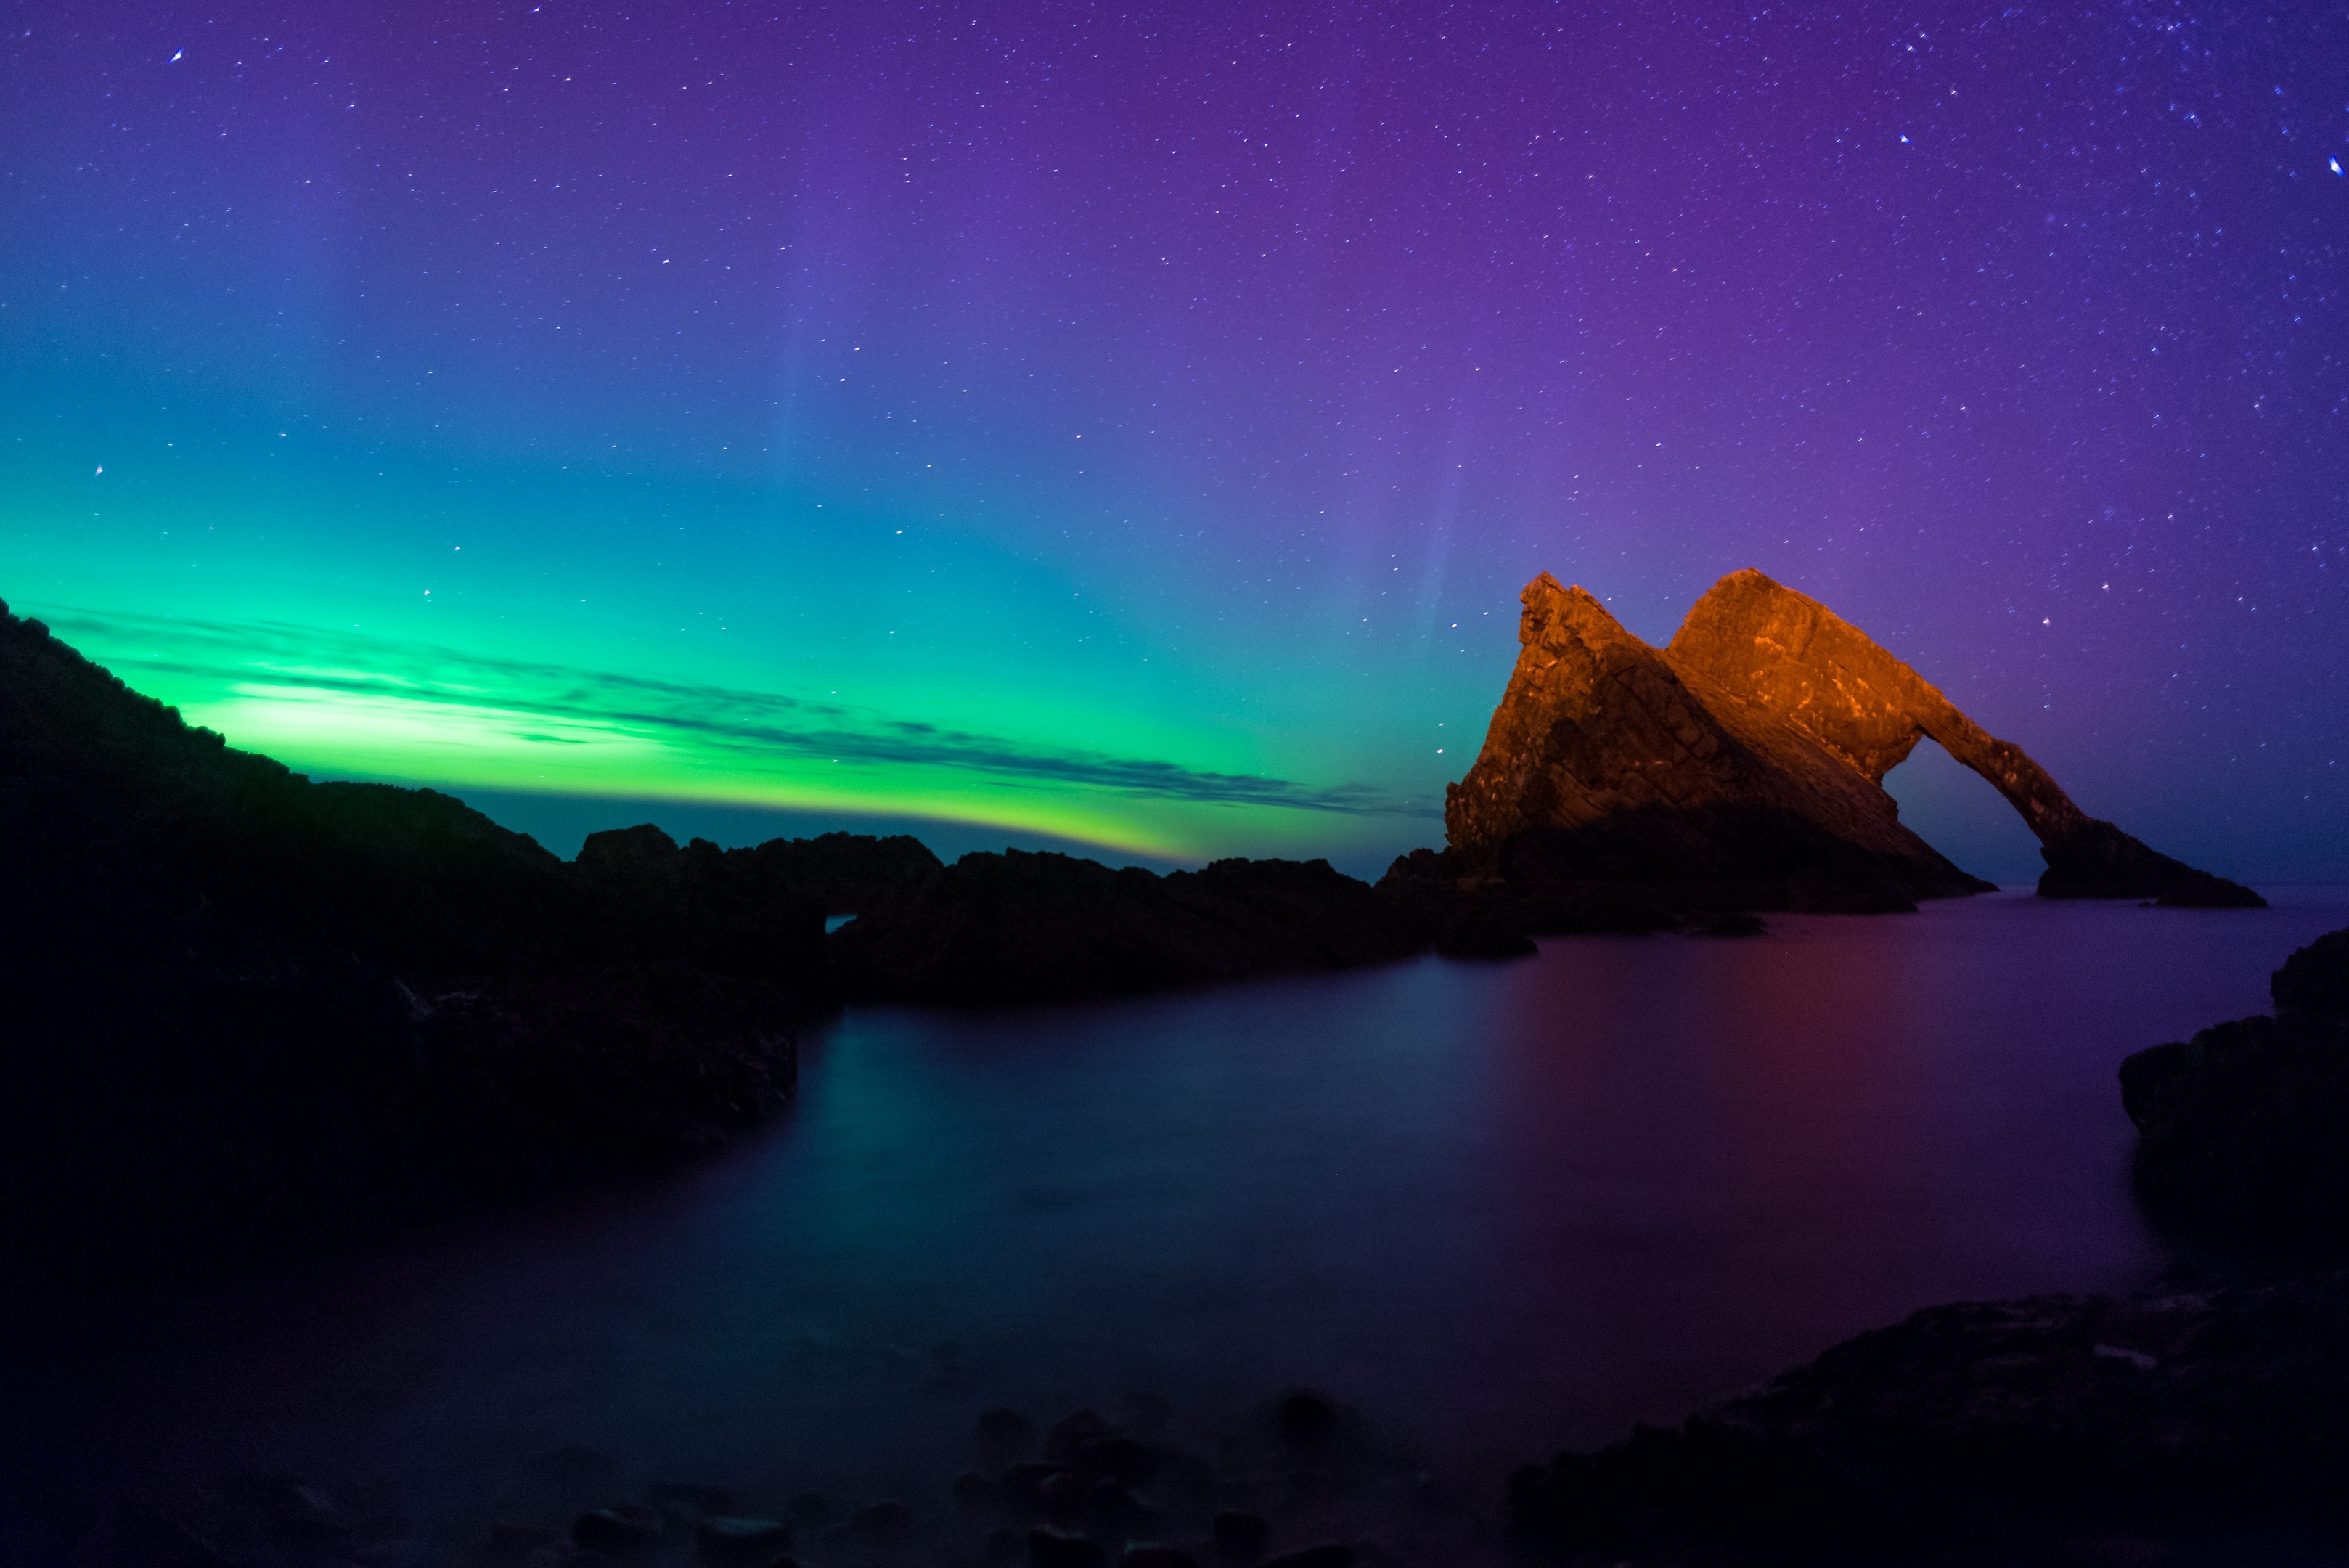 Stunning Aurora seen in Portknockie, Scotland, by Fancis Masson. See Ross Parry copy RPYAURORA:  Space weather forecasters predicted strong showing of the Aurora on Tuesday. The predicted global geomagnetic activity could have reached reached as high as kp6 overnight, meaning parts of northern UK could see the aurora activity.